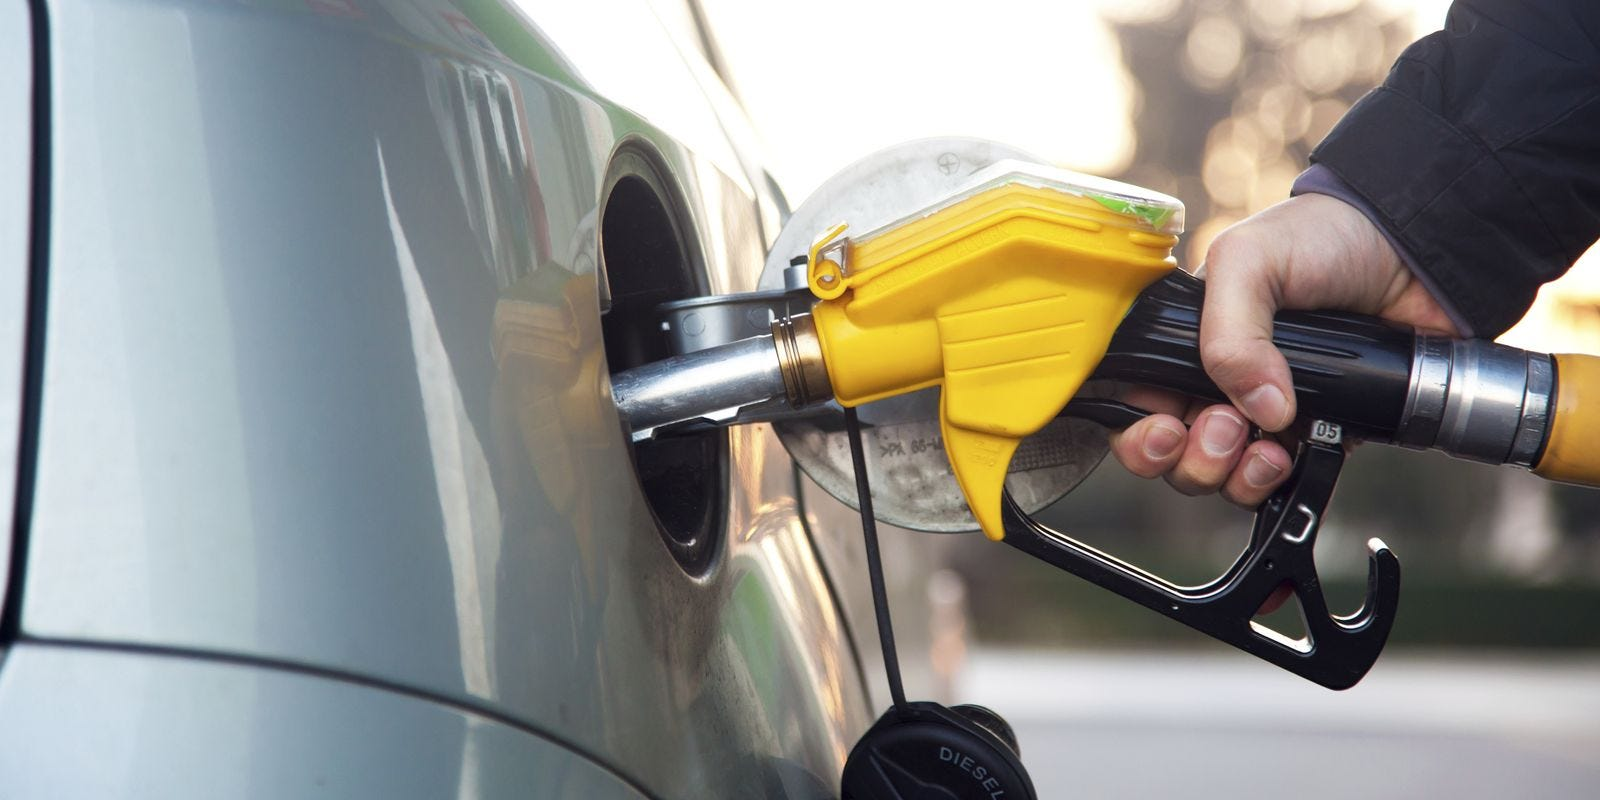 FG has assured that fuel will soon sell at a cheaper price.The Minister of Information and Culture, Alhaji Lai Mohammed made this known...